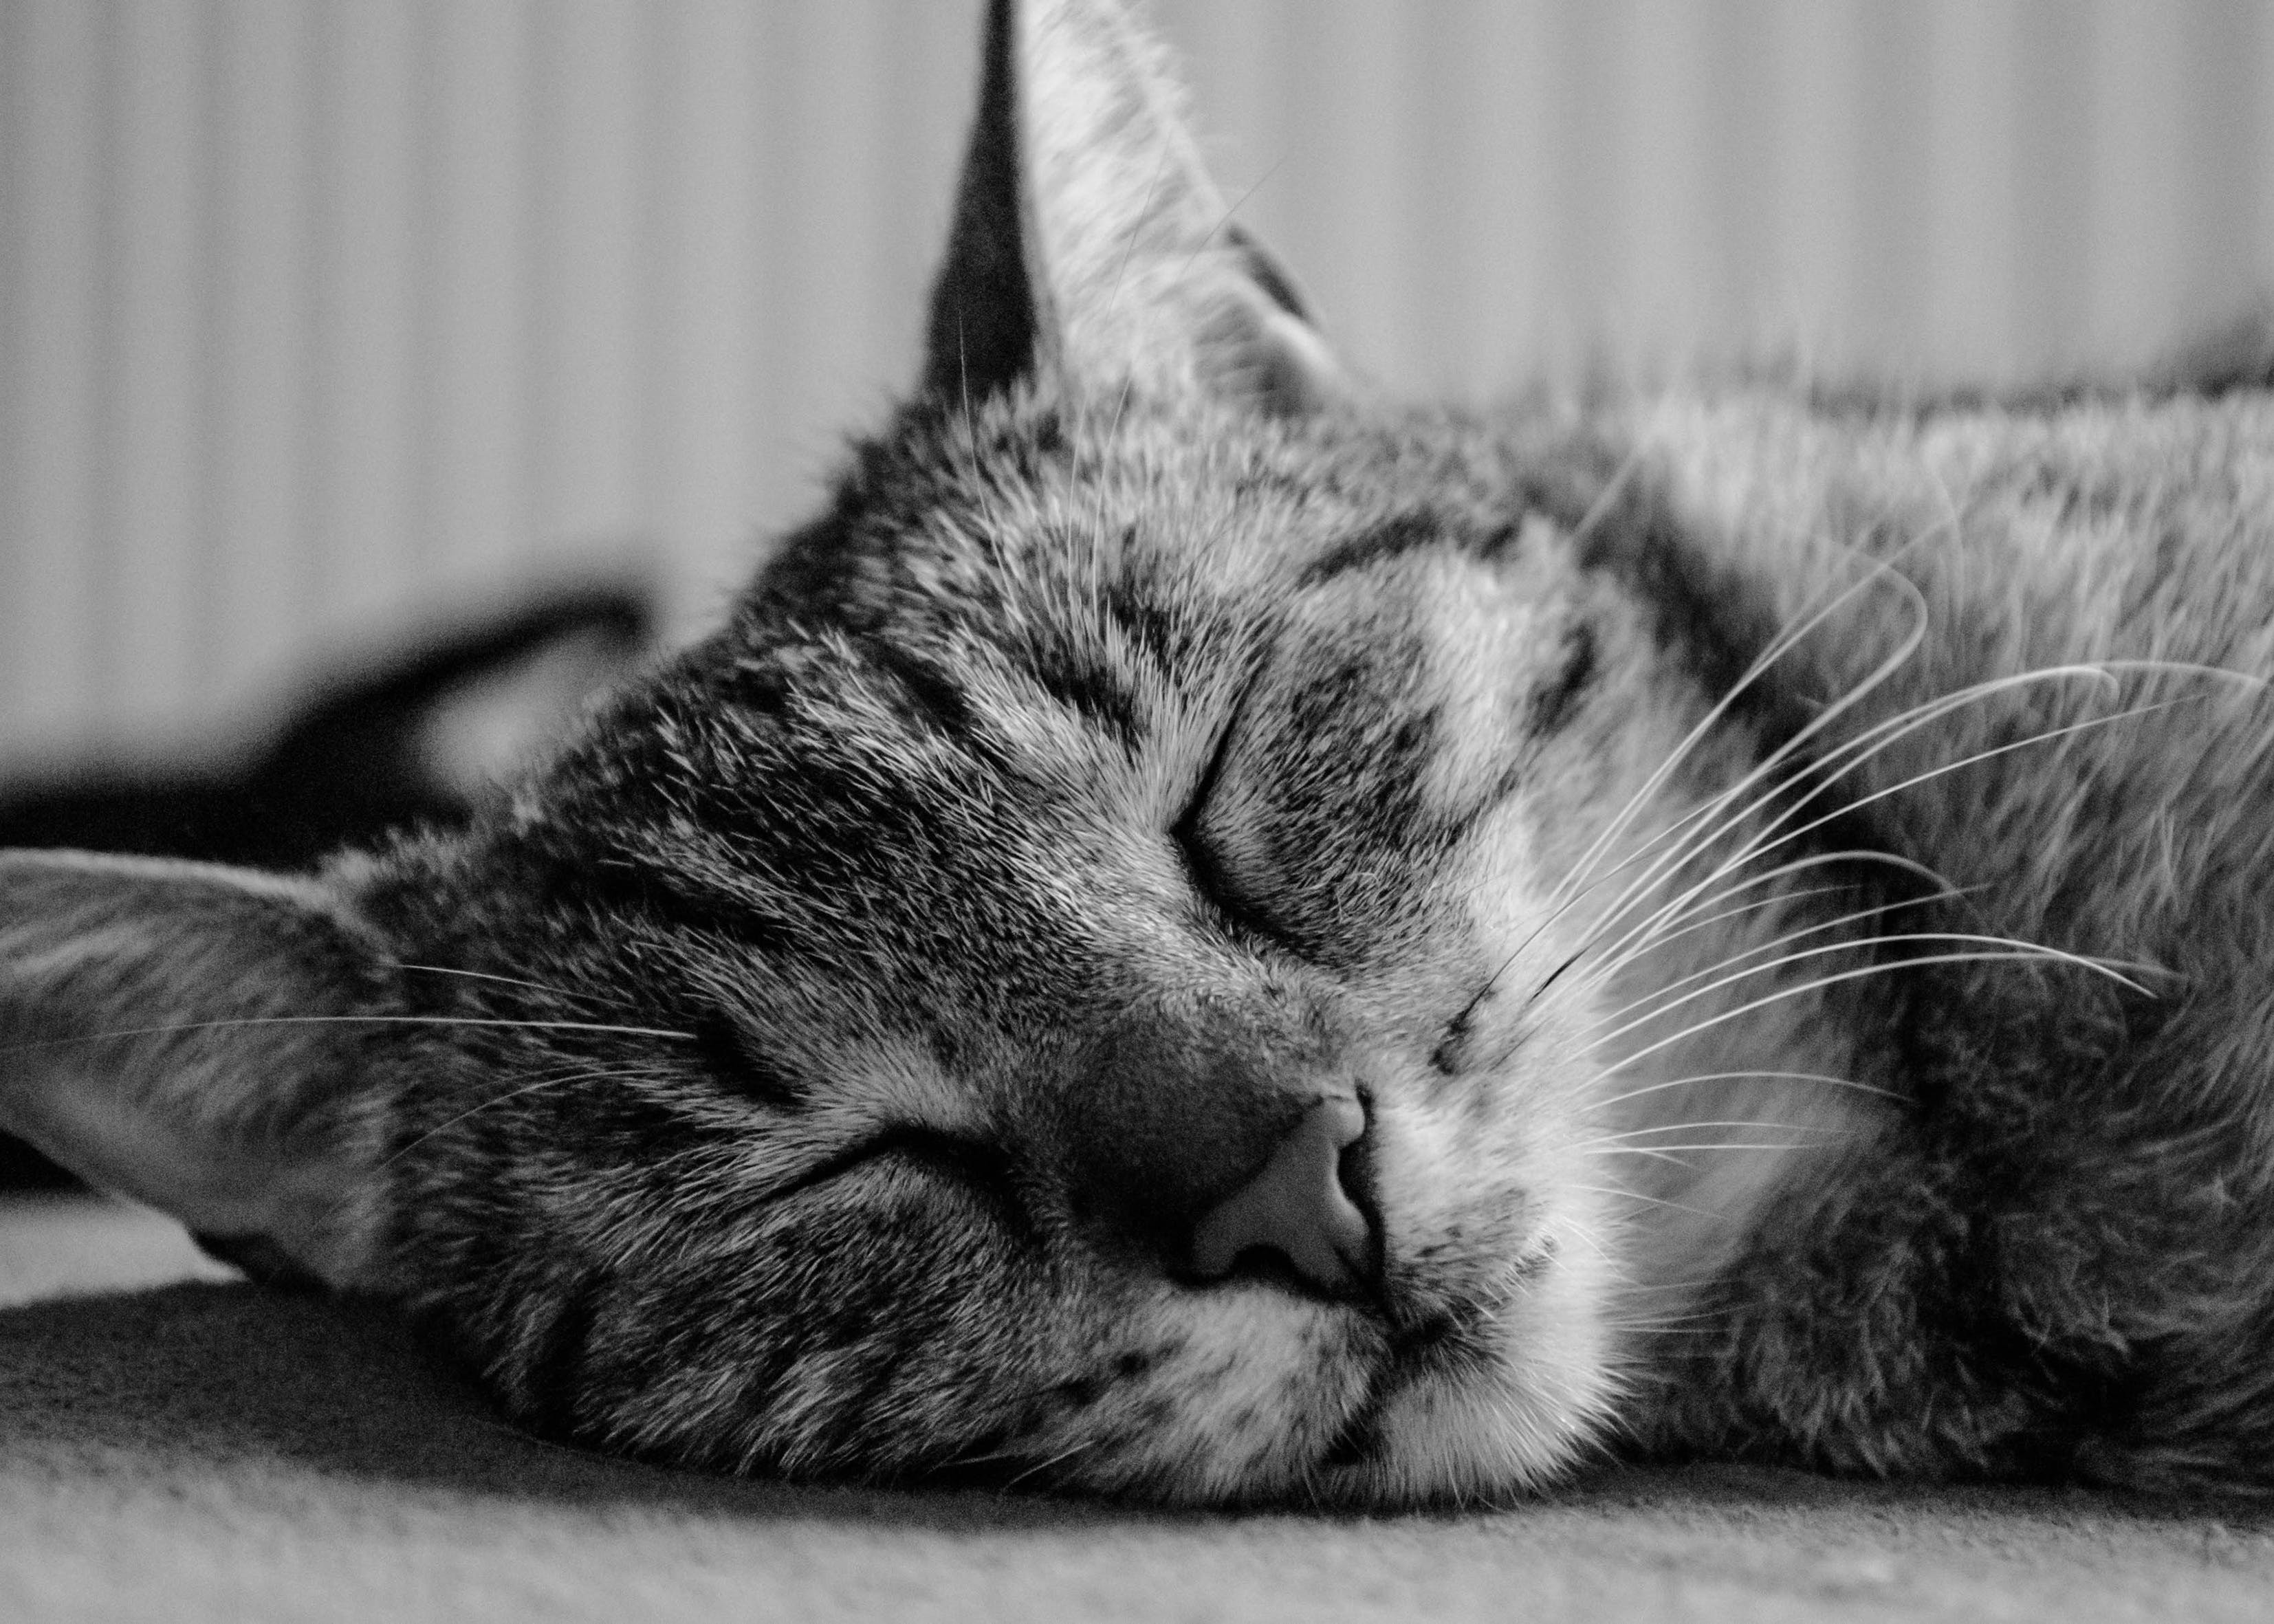 Grayscale Silver Tabby Cat Sleeping